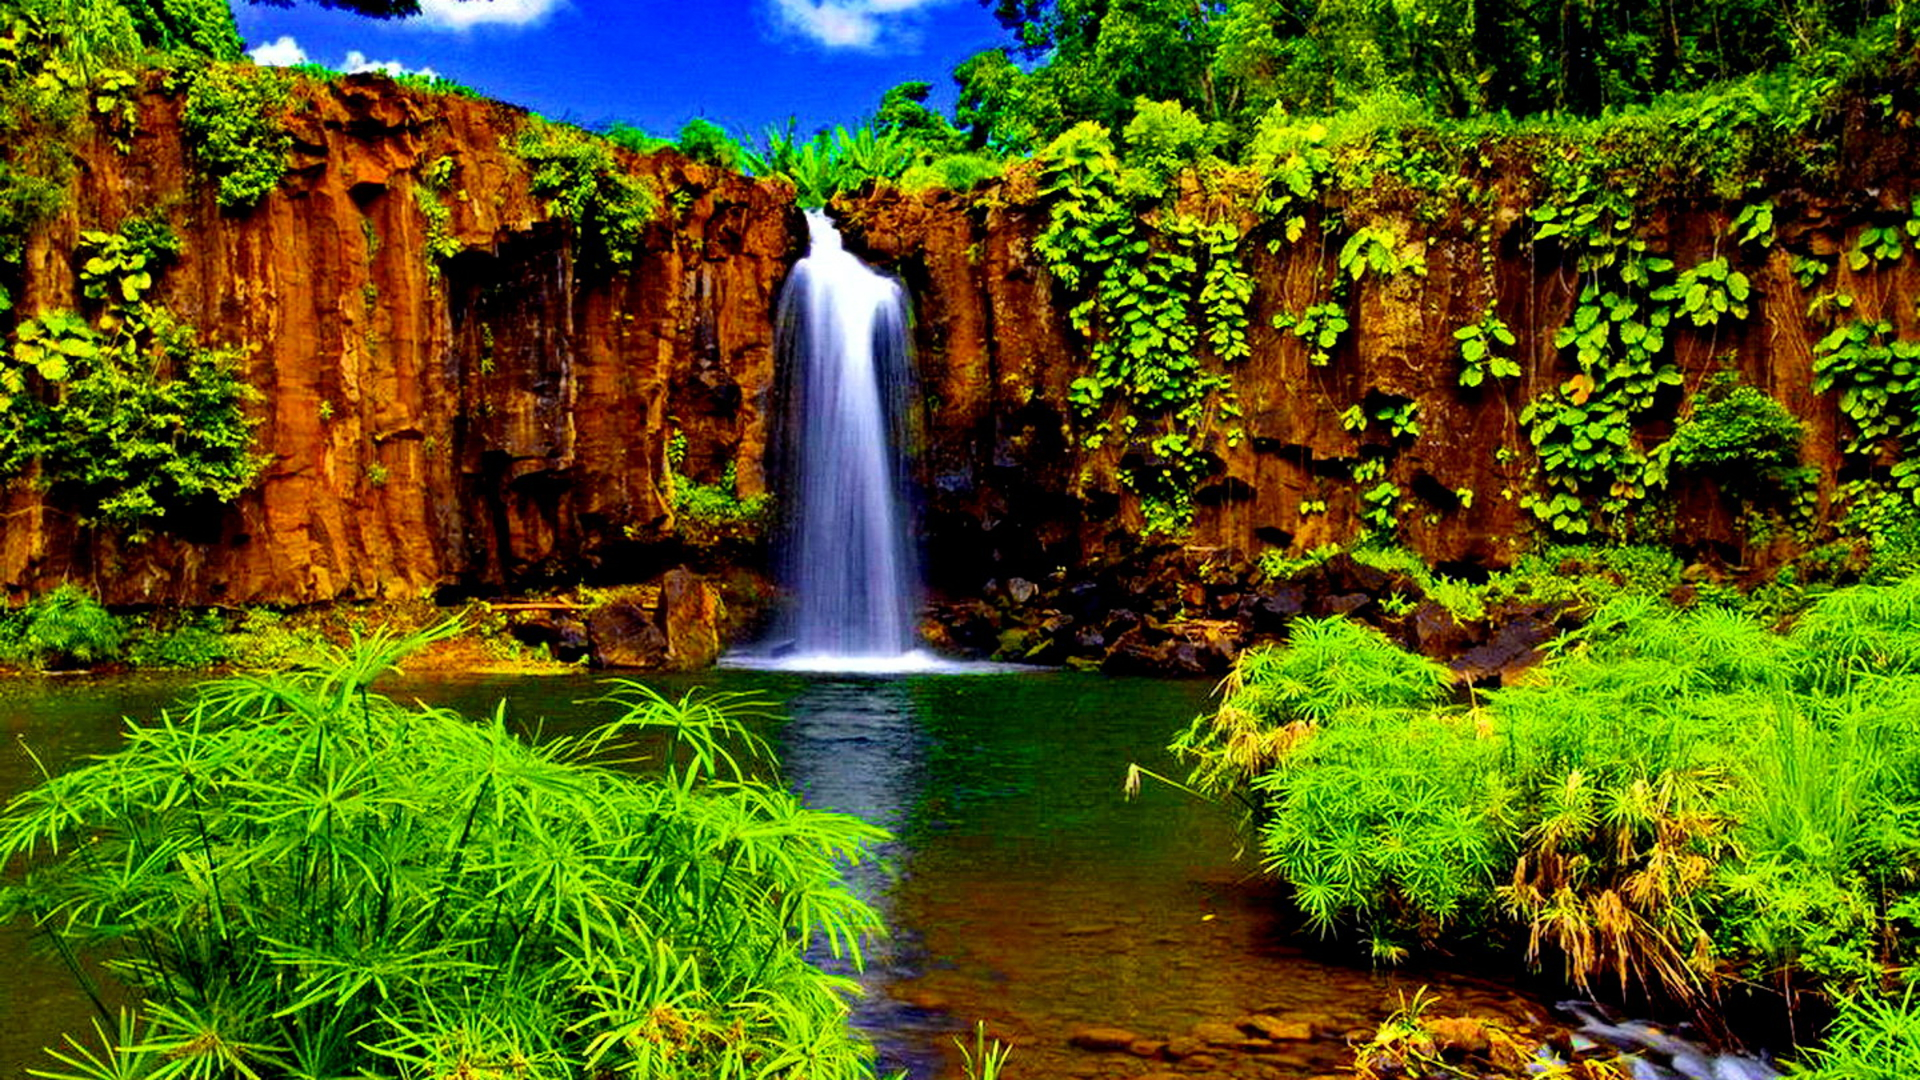 1920x1080 Hd Wallpapers Waterfall: Tropical Waterfall HD Wallpaper